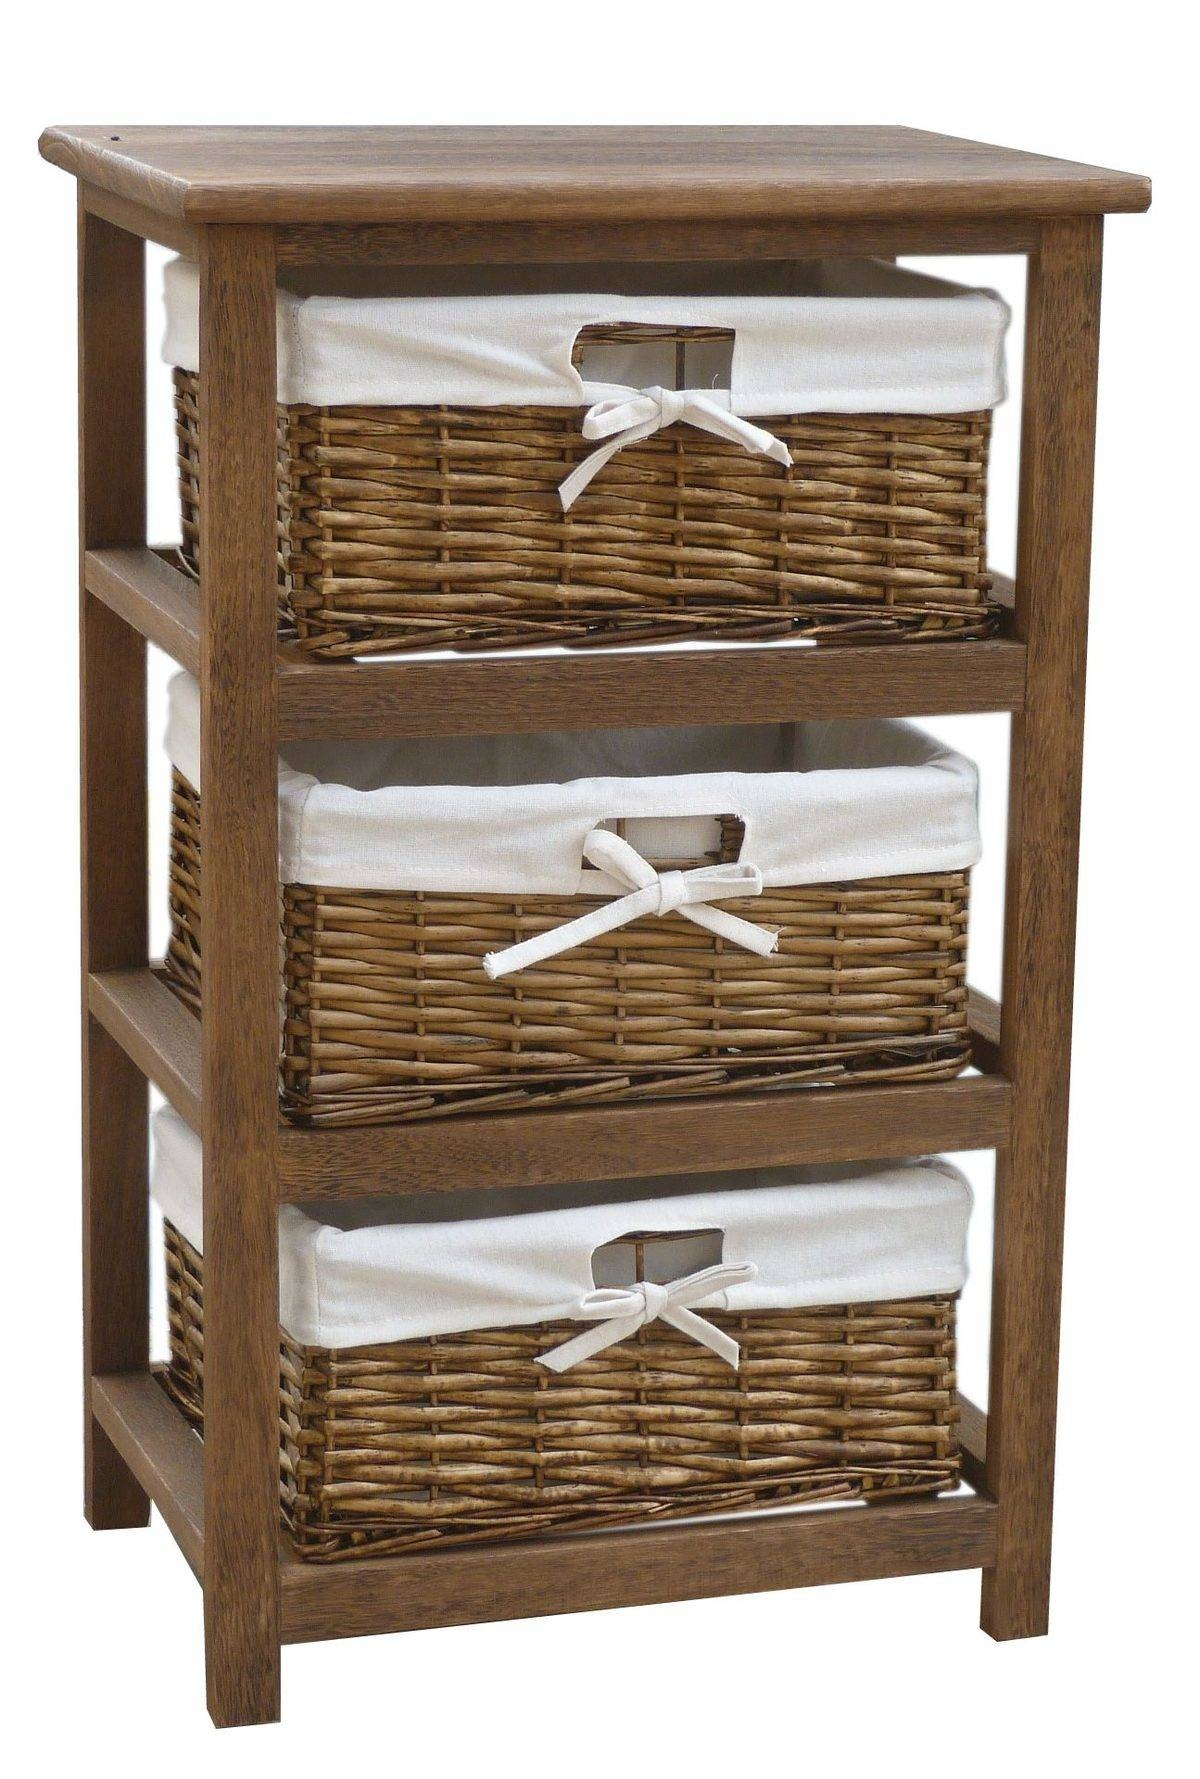 Wooden Storage Cabinet With Basketsbentley home wooden storage cabinets with 3 wicker basket